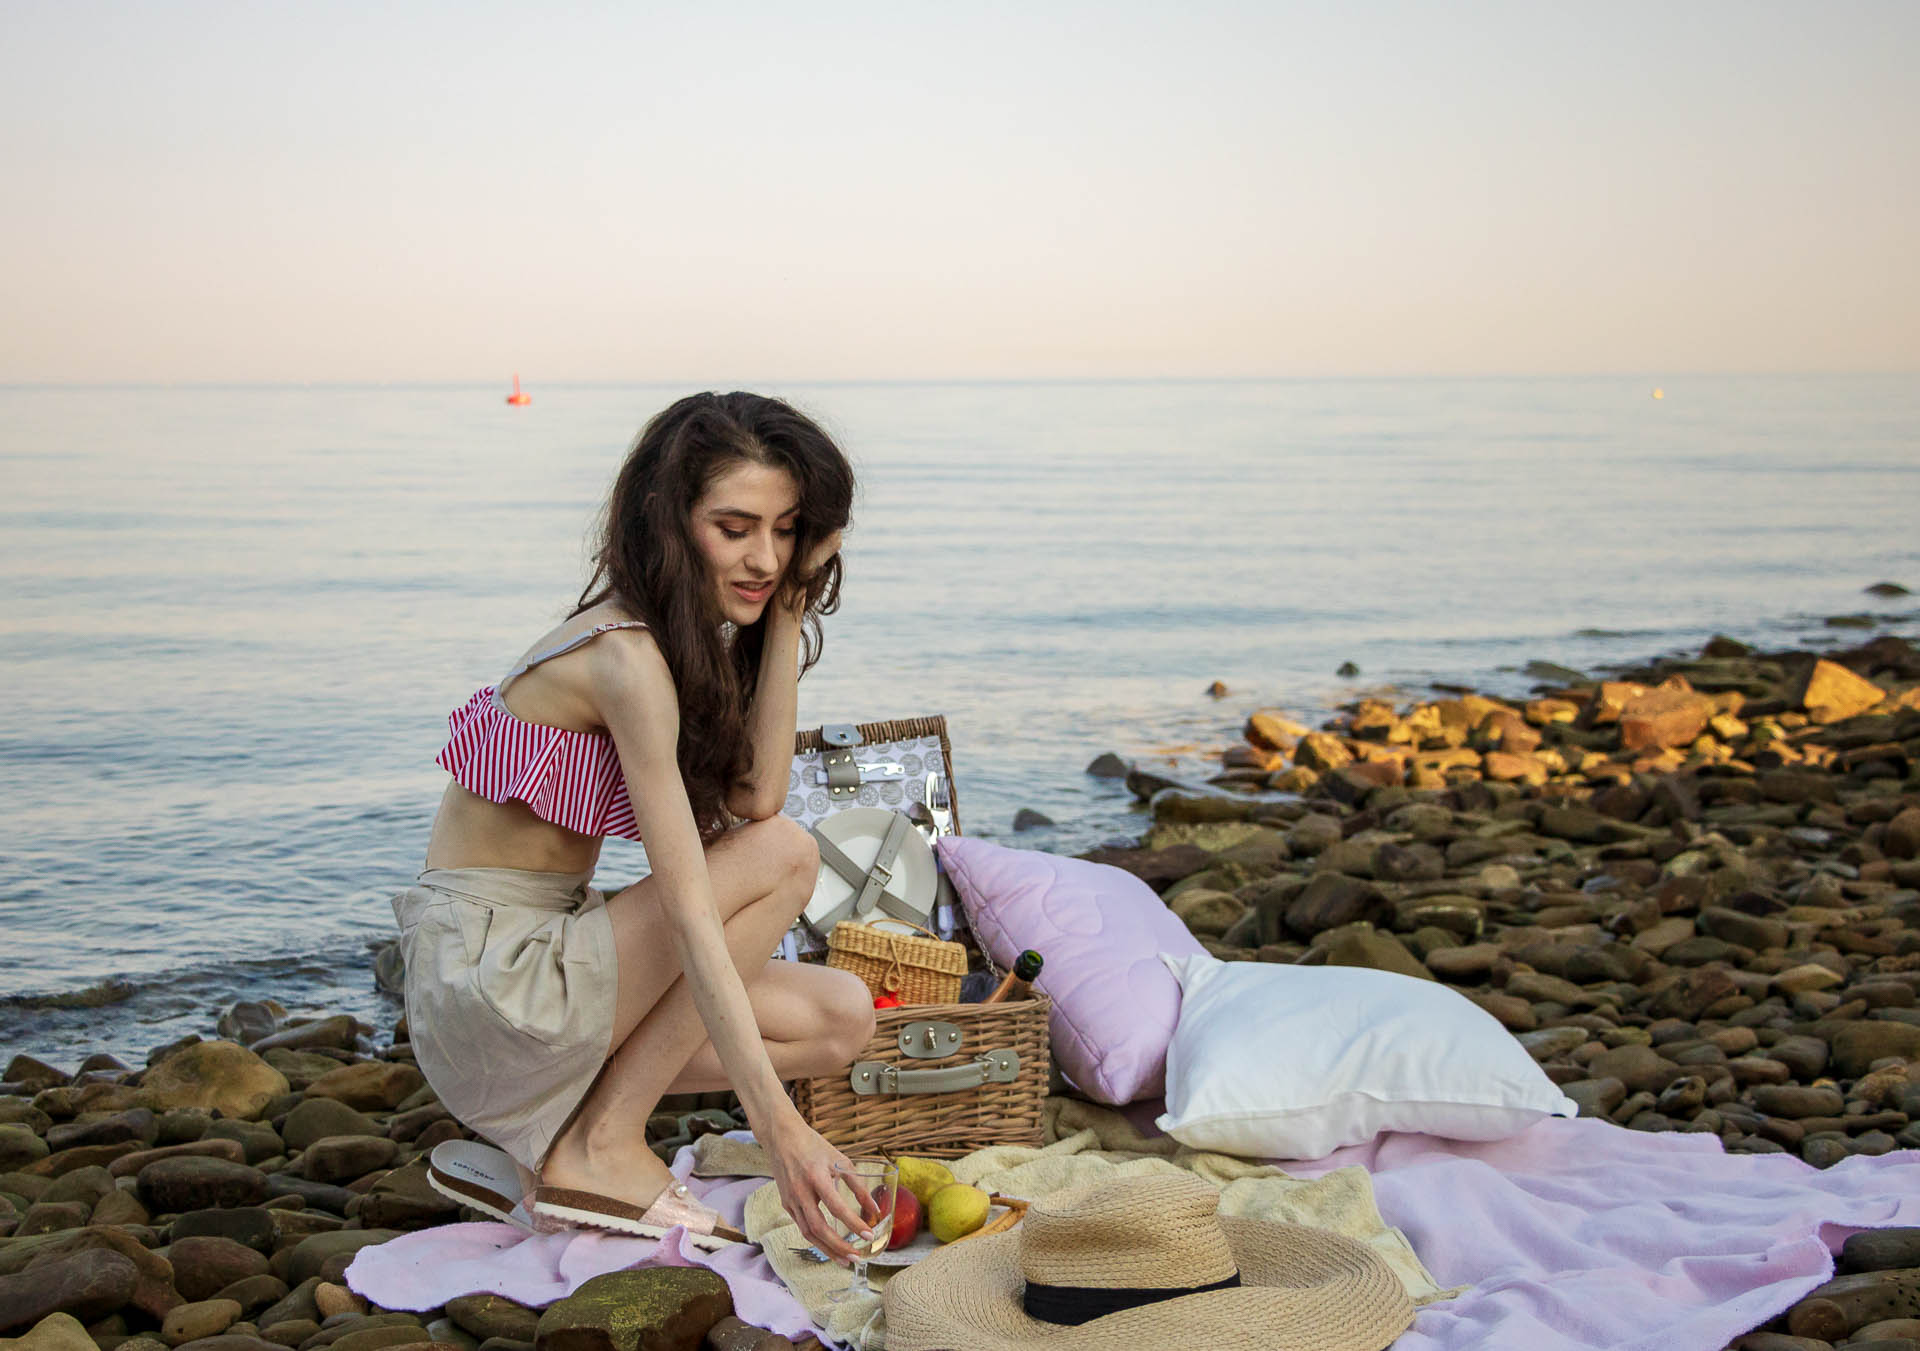 Slovenian Fashion Blogger Veronika Lipar of Brunette from Wall wearing beige linen crop top, paper bag linen shorts, luxe pool slides, large straw hat, Nannacay basket bag while pouring champagne for beach picnic